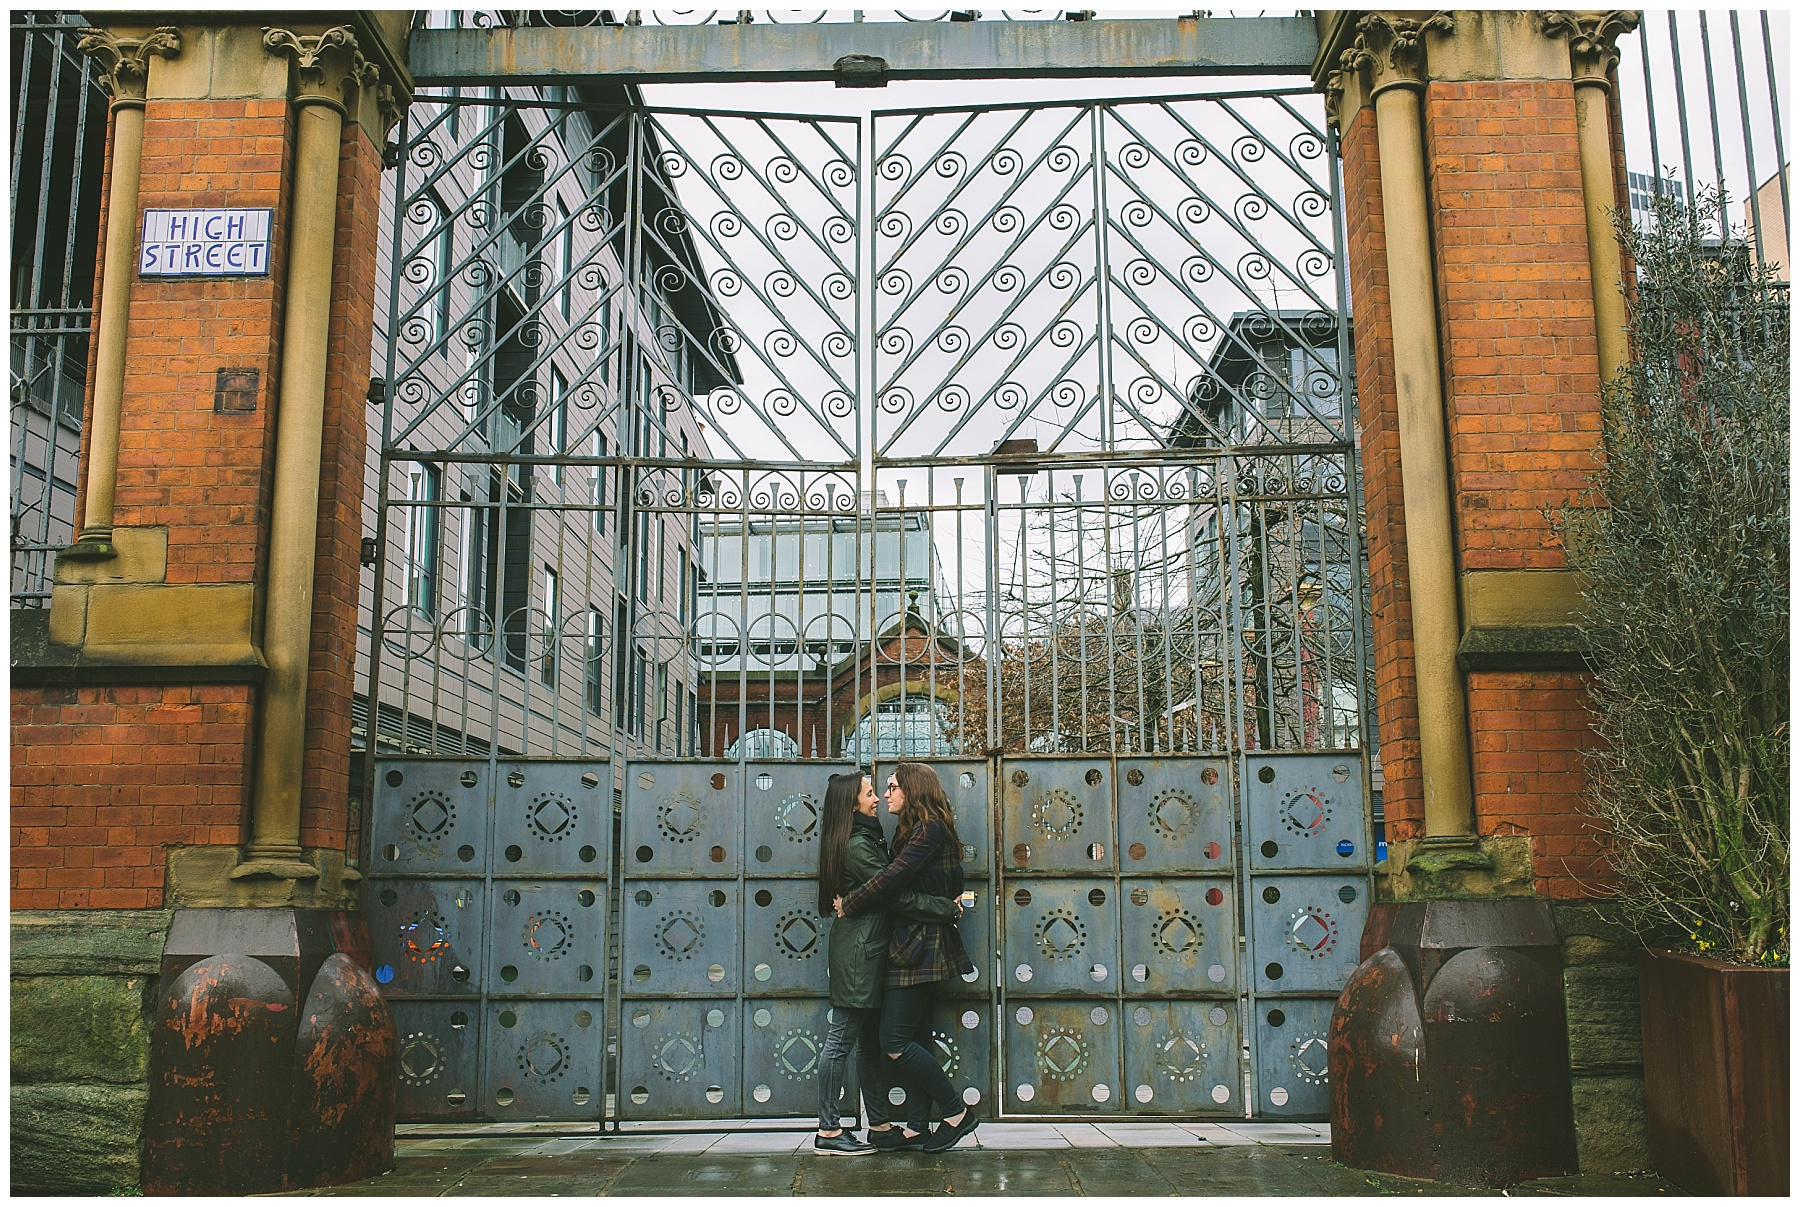 lesbian couple share a moment in front of the gates of the old Manchester fish markets